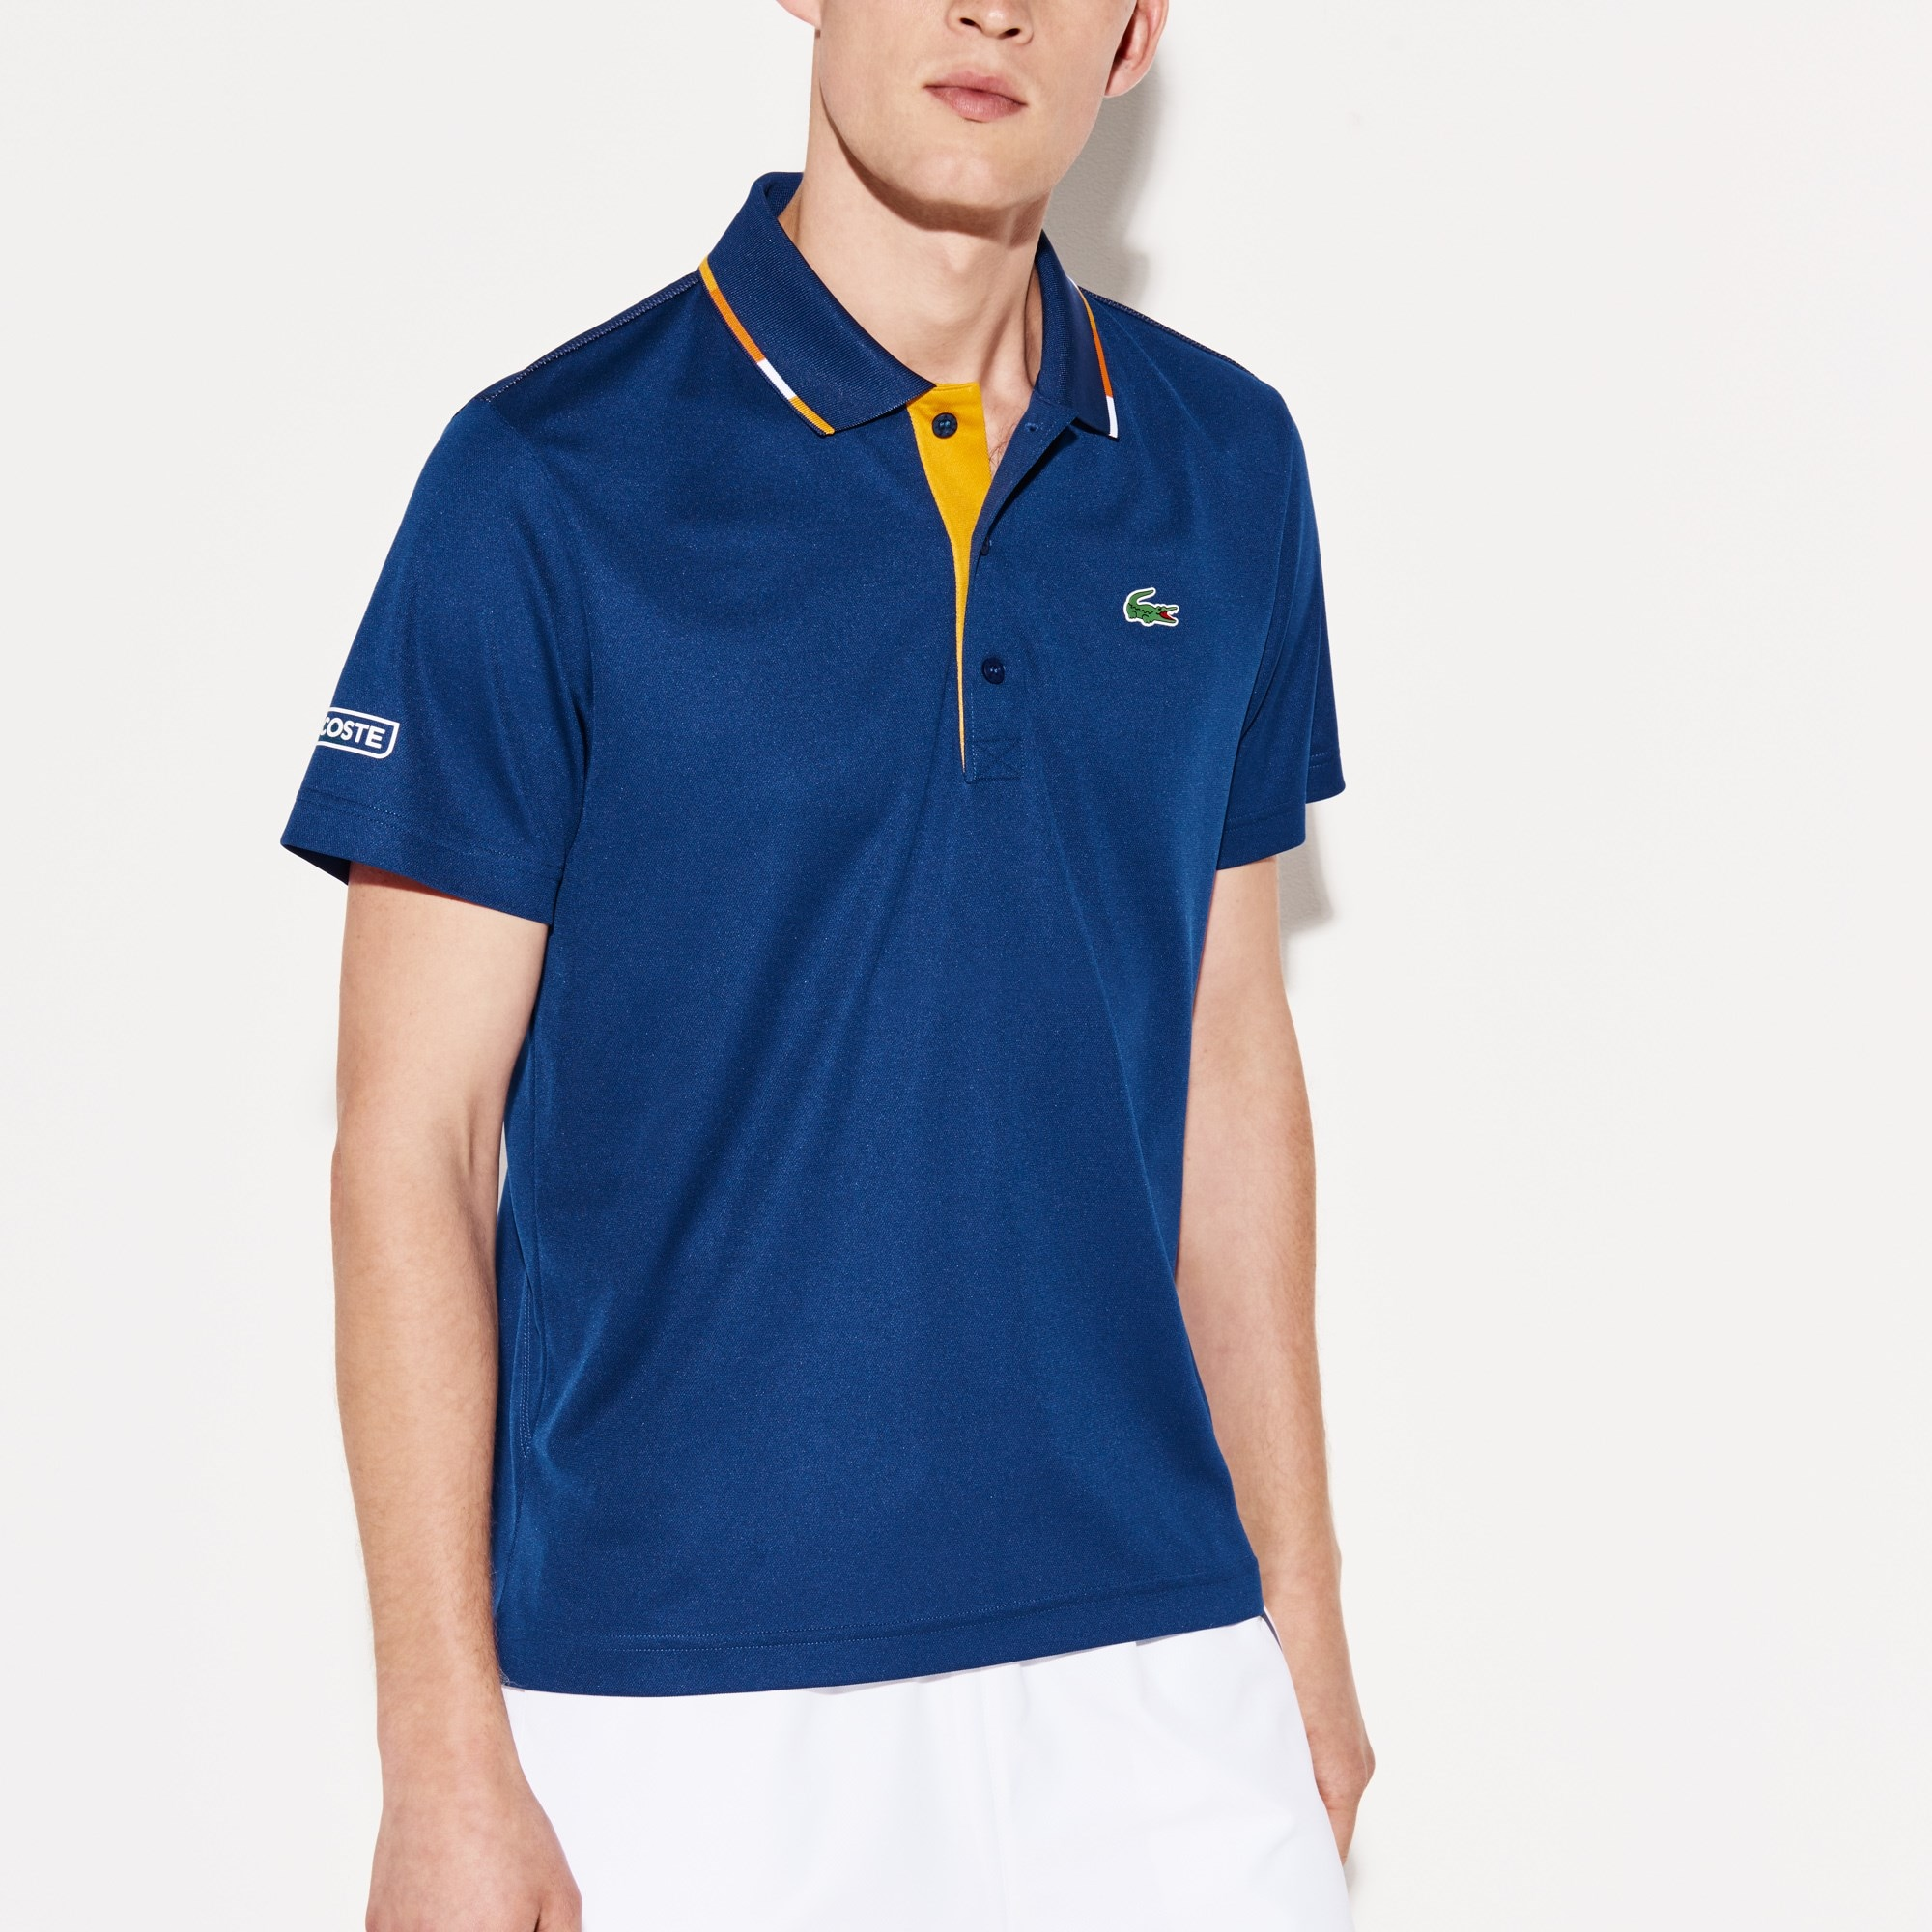 Men's Lacoste SPORT Piped Technical Piqué Tennis Polo Shirt